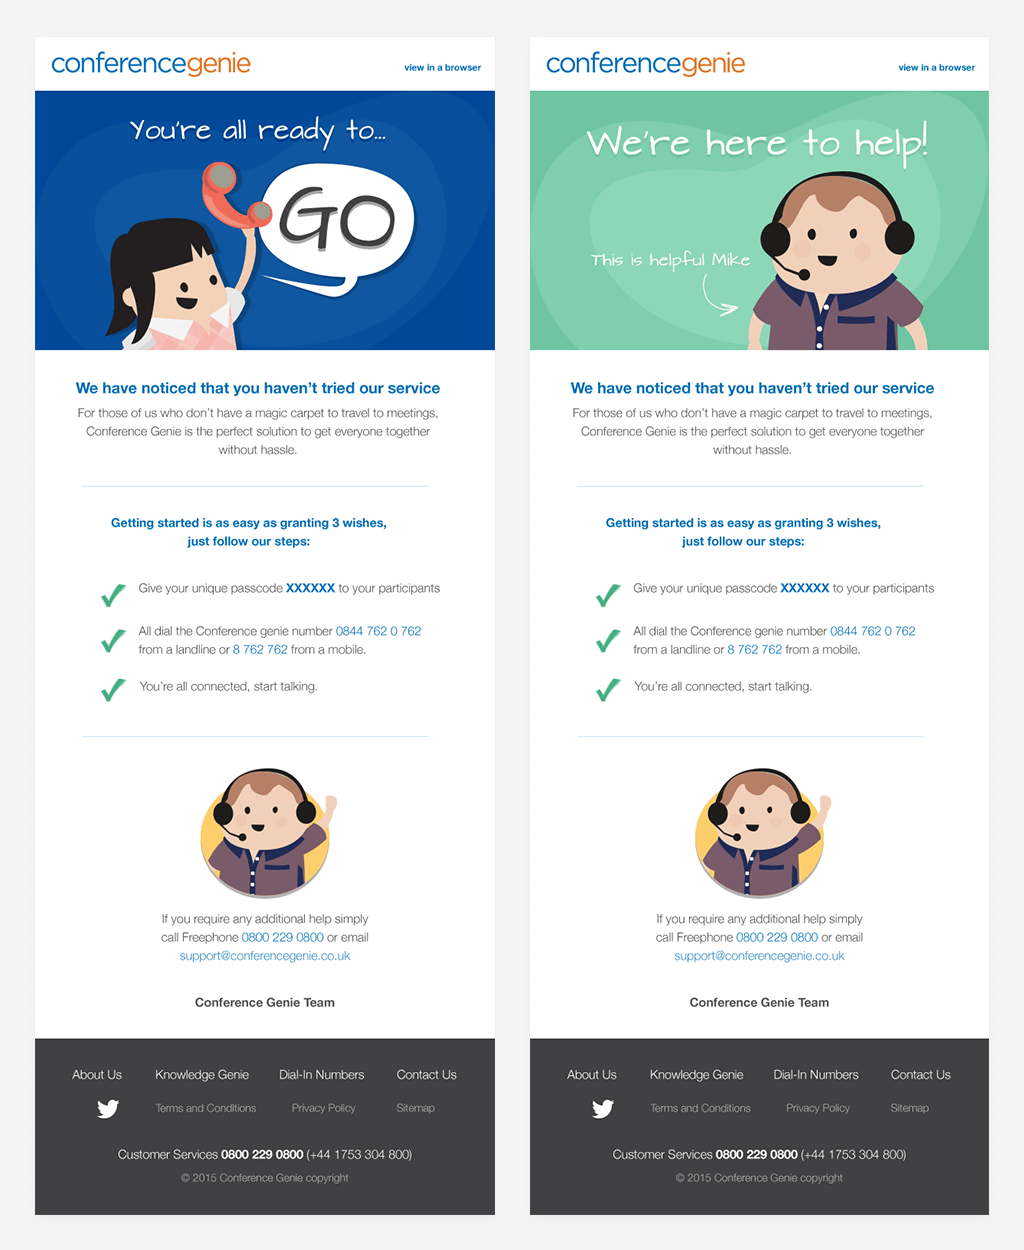 Conference Genie — repsonsive HTML email design